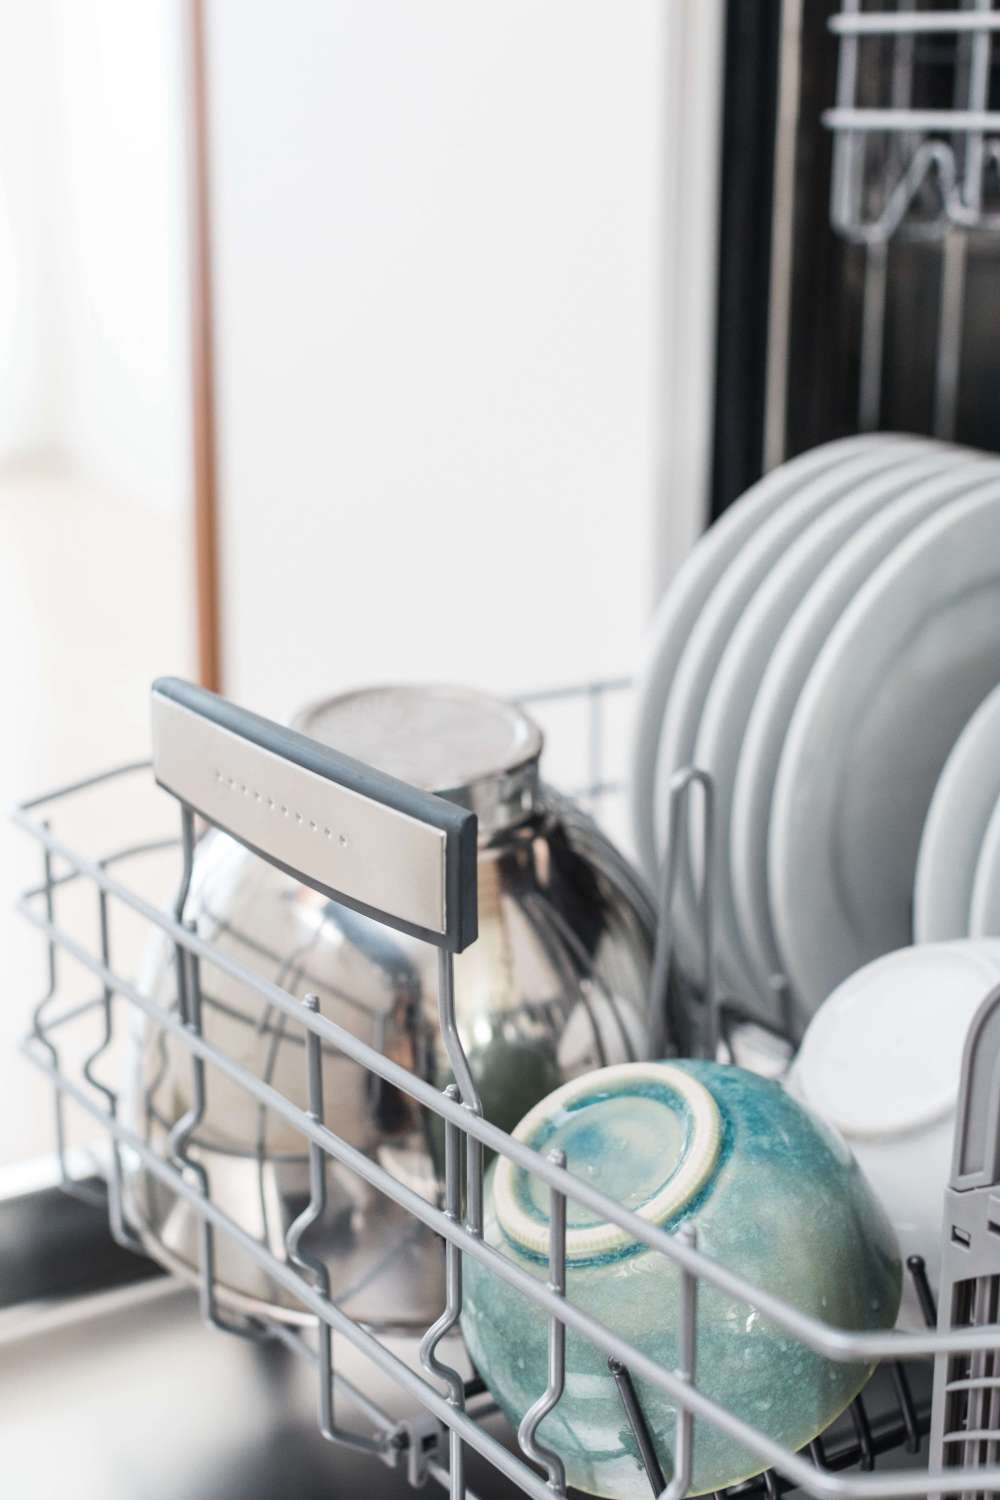 medium resolution of expert advice from bosch how to load a dishwasher